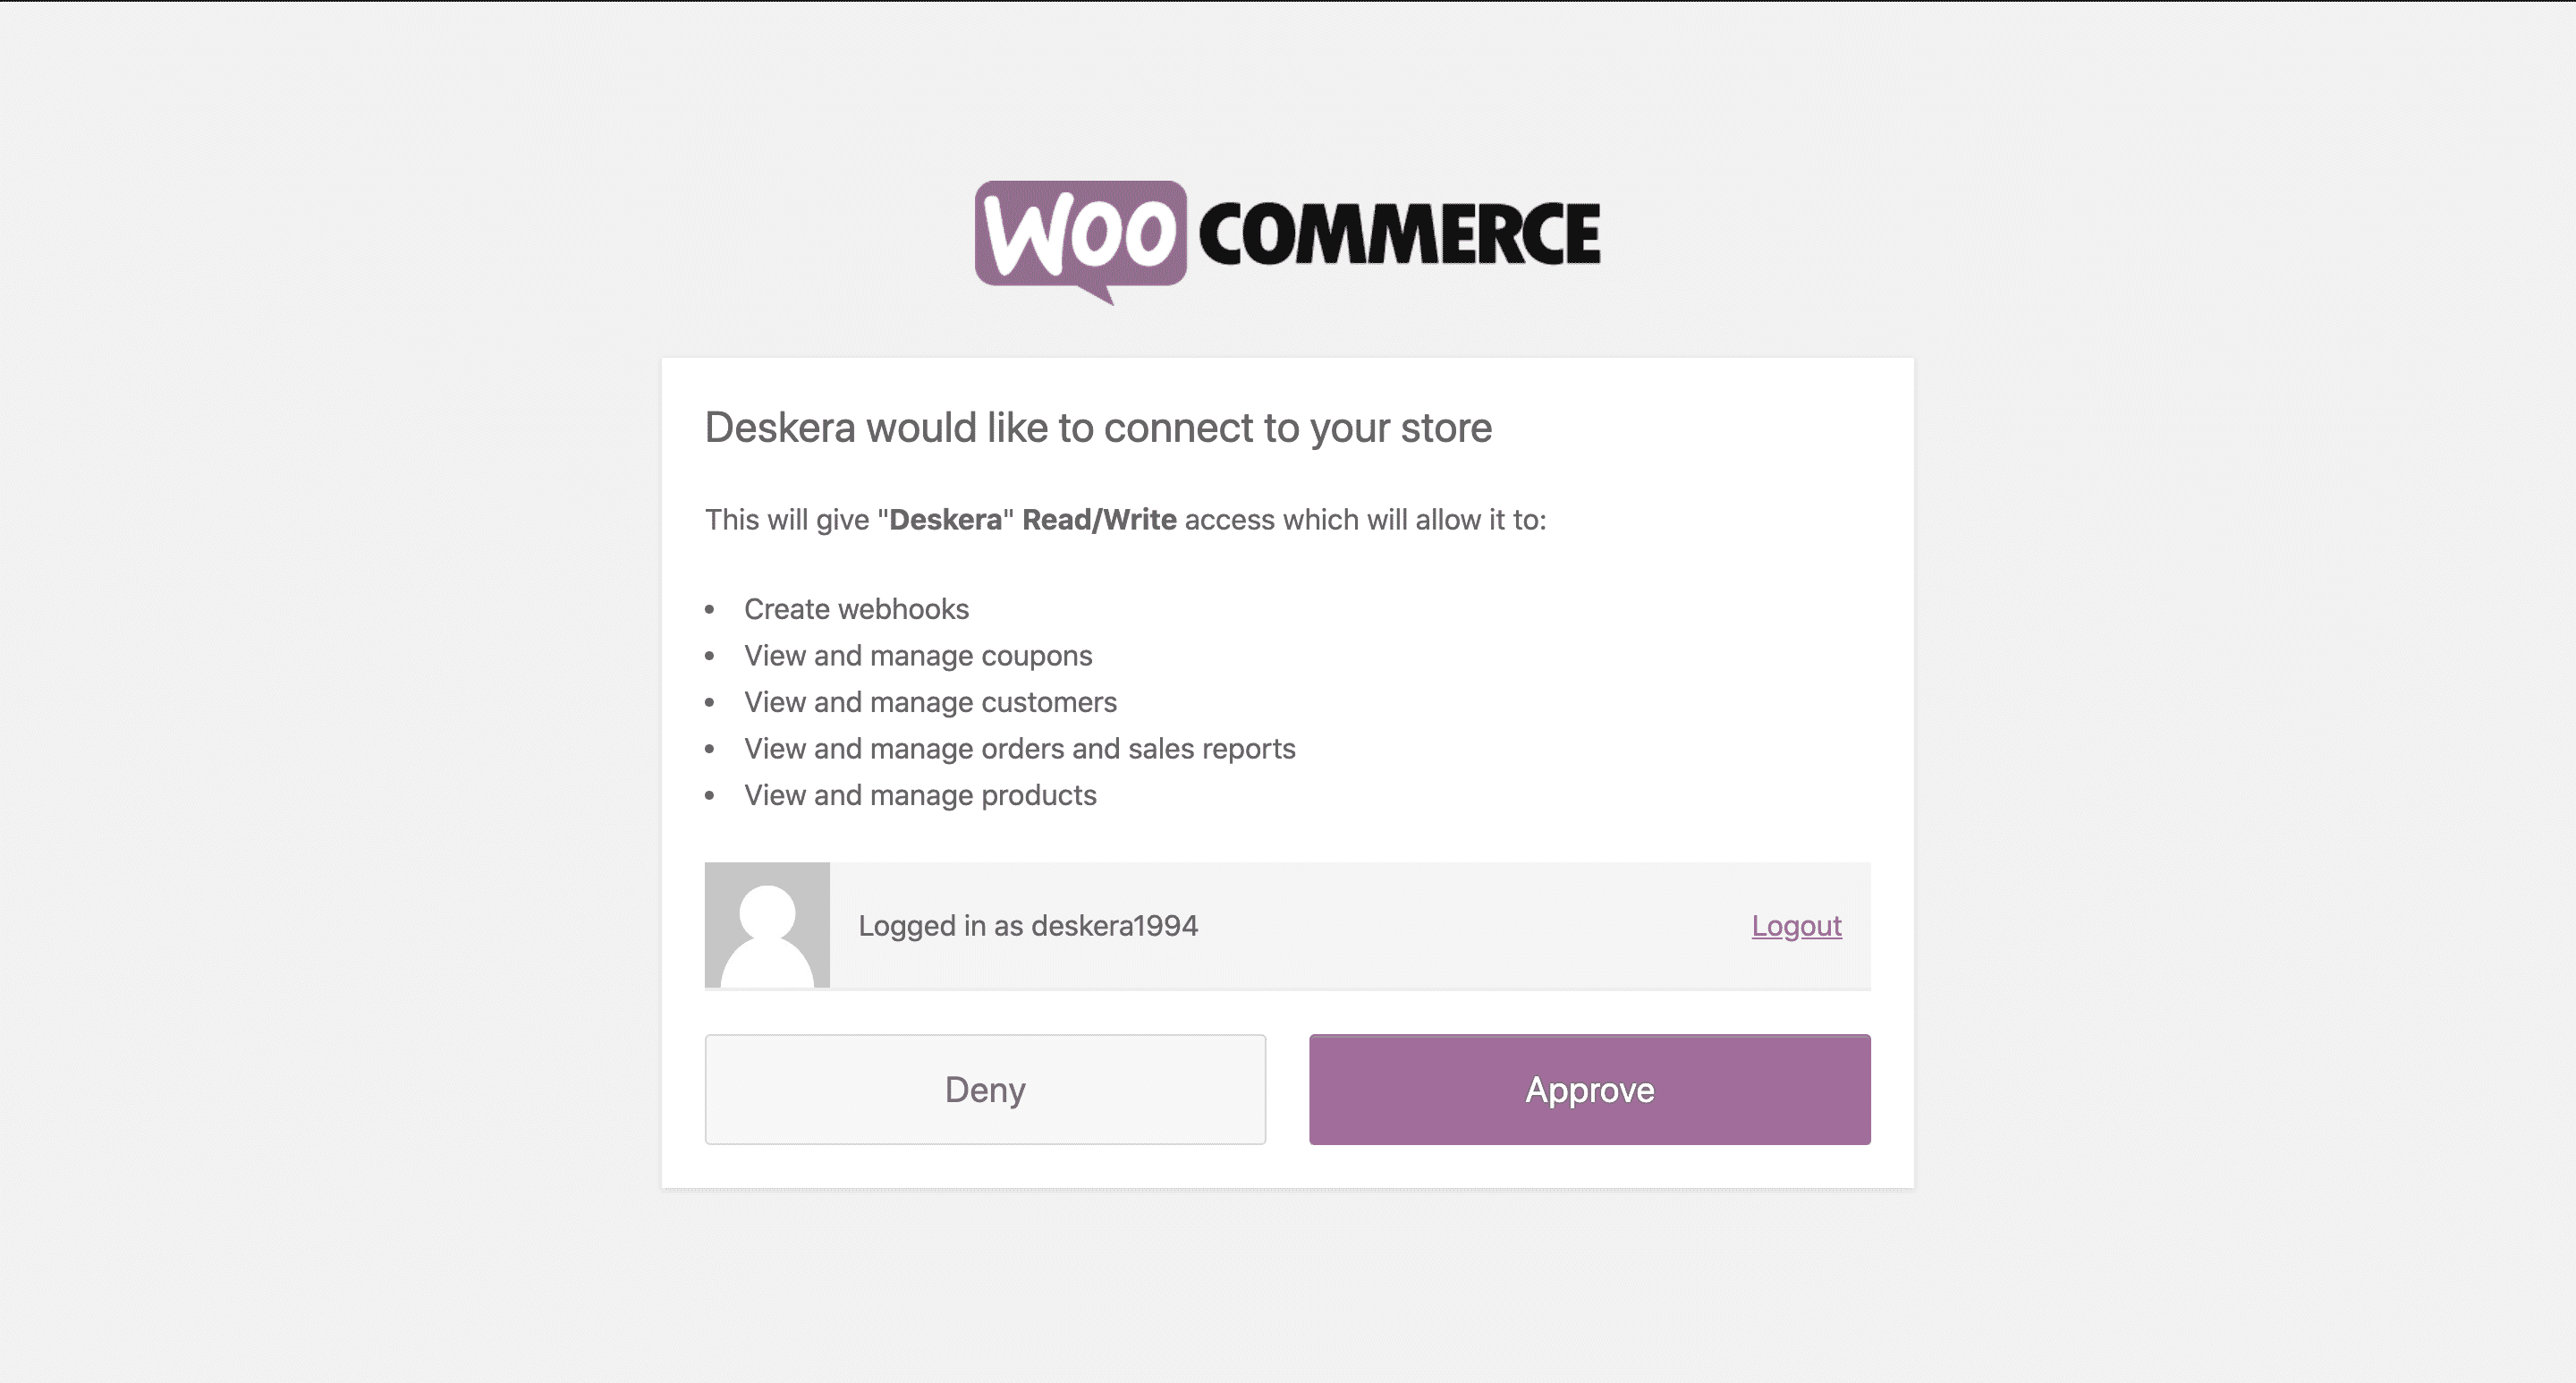 WooCommerce accounting integration with Deskera. Connect your WooCommerce store with Deskera for integrated accounting, tax, inventory and payments